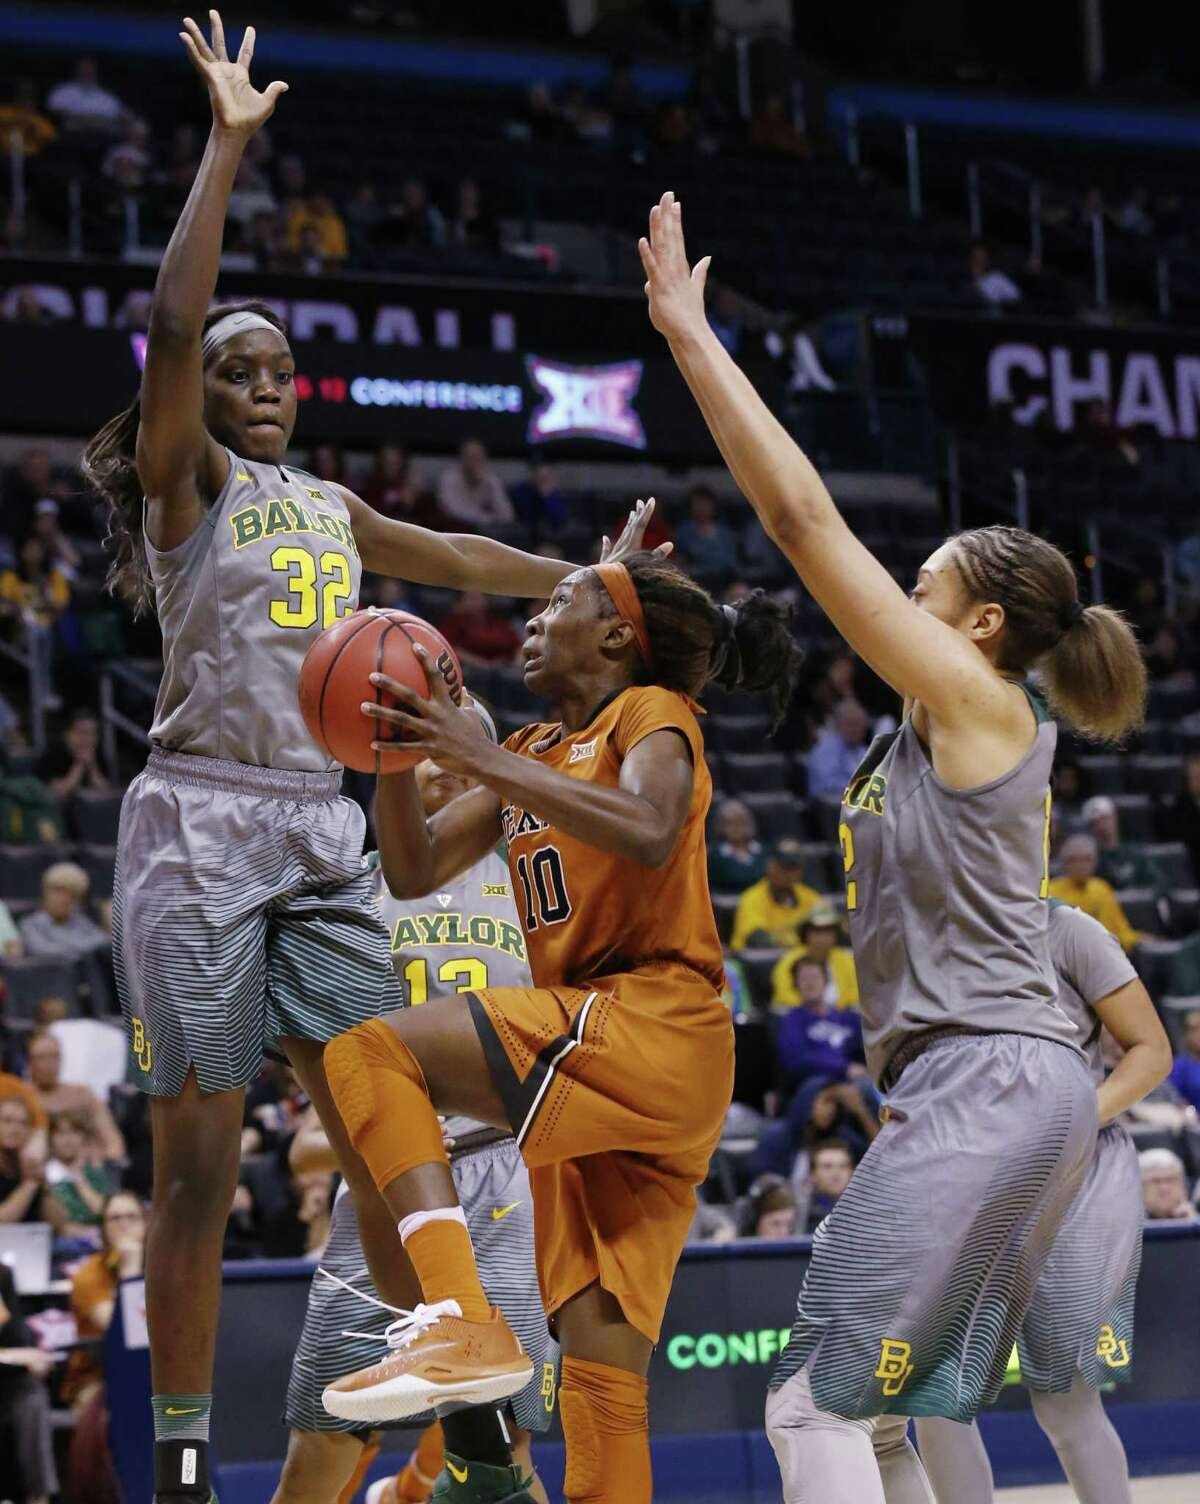 Texas' Lashann Higgs, center, tries to get past Baylor's Beatrice Mompremier (32) and Alexis Prince while on her way to the basket late in Monday night's game.